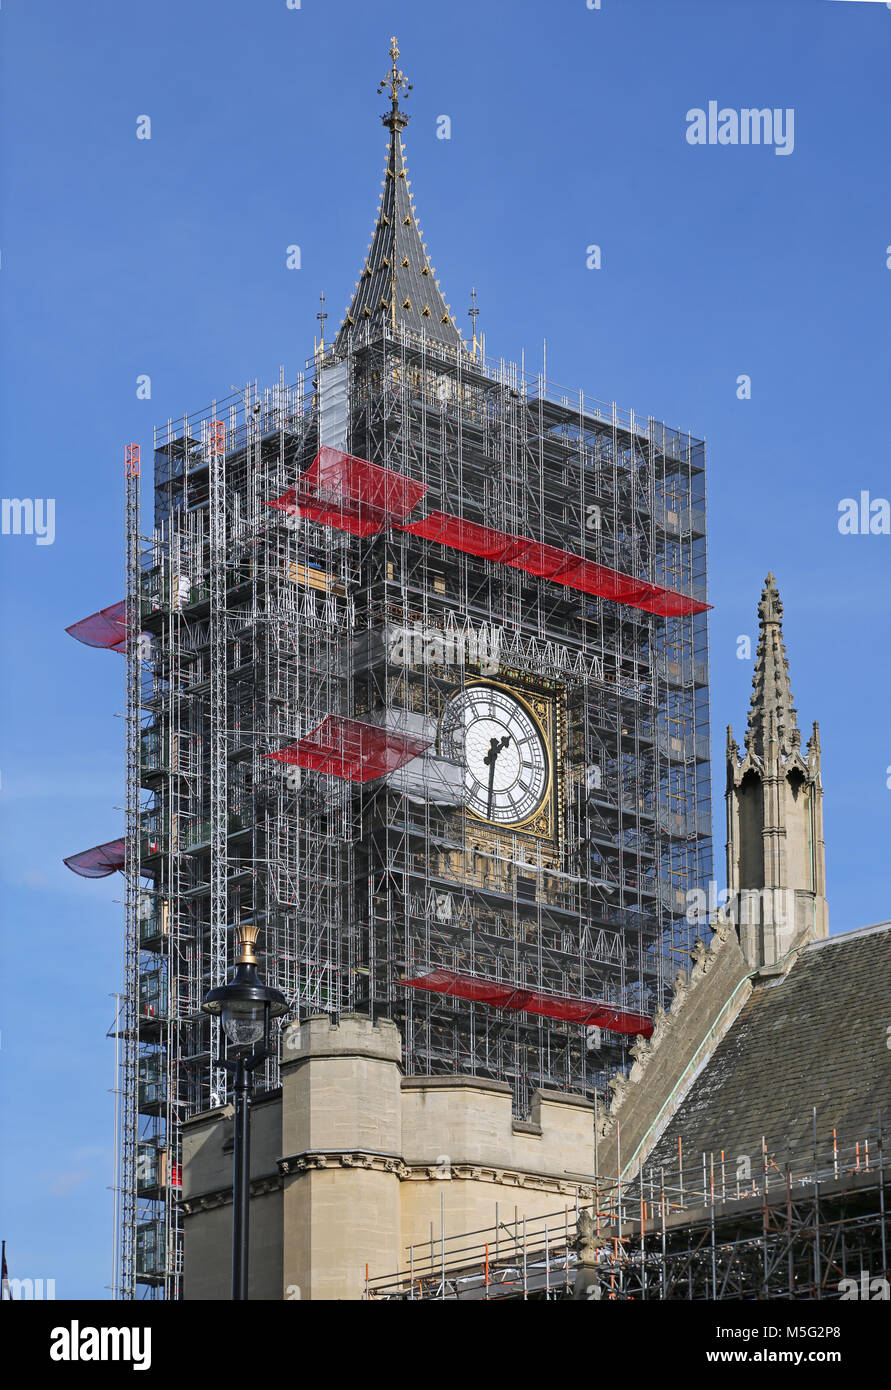 Big ben londons famous clock tower surrounded by scaffolding for big ben londons famous clock tower surrounded by scaffolding for major refurbishment work march 2018 southern clock face still exposed malvernweather Images